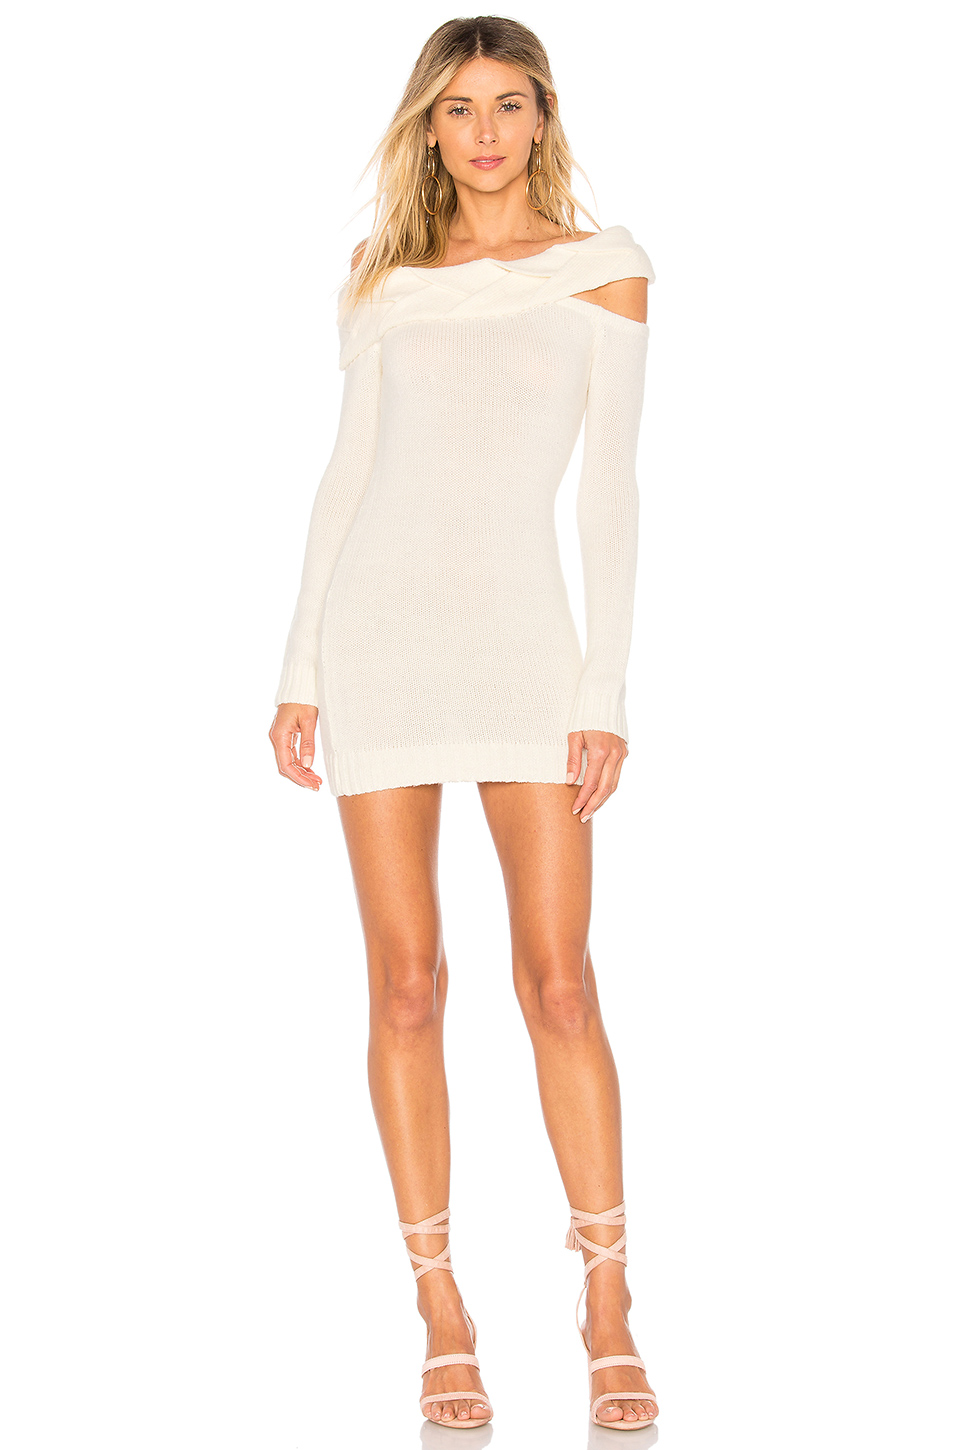 ale by alessandra x Lupita Dress in White